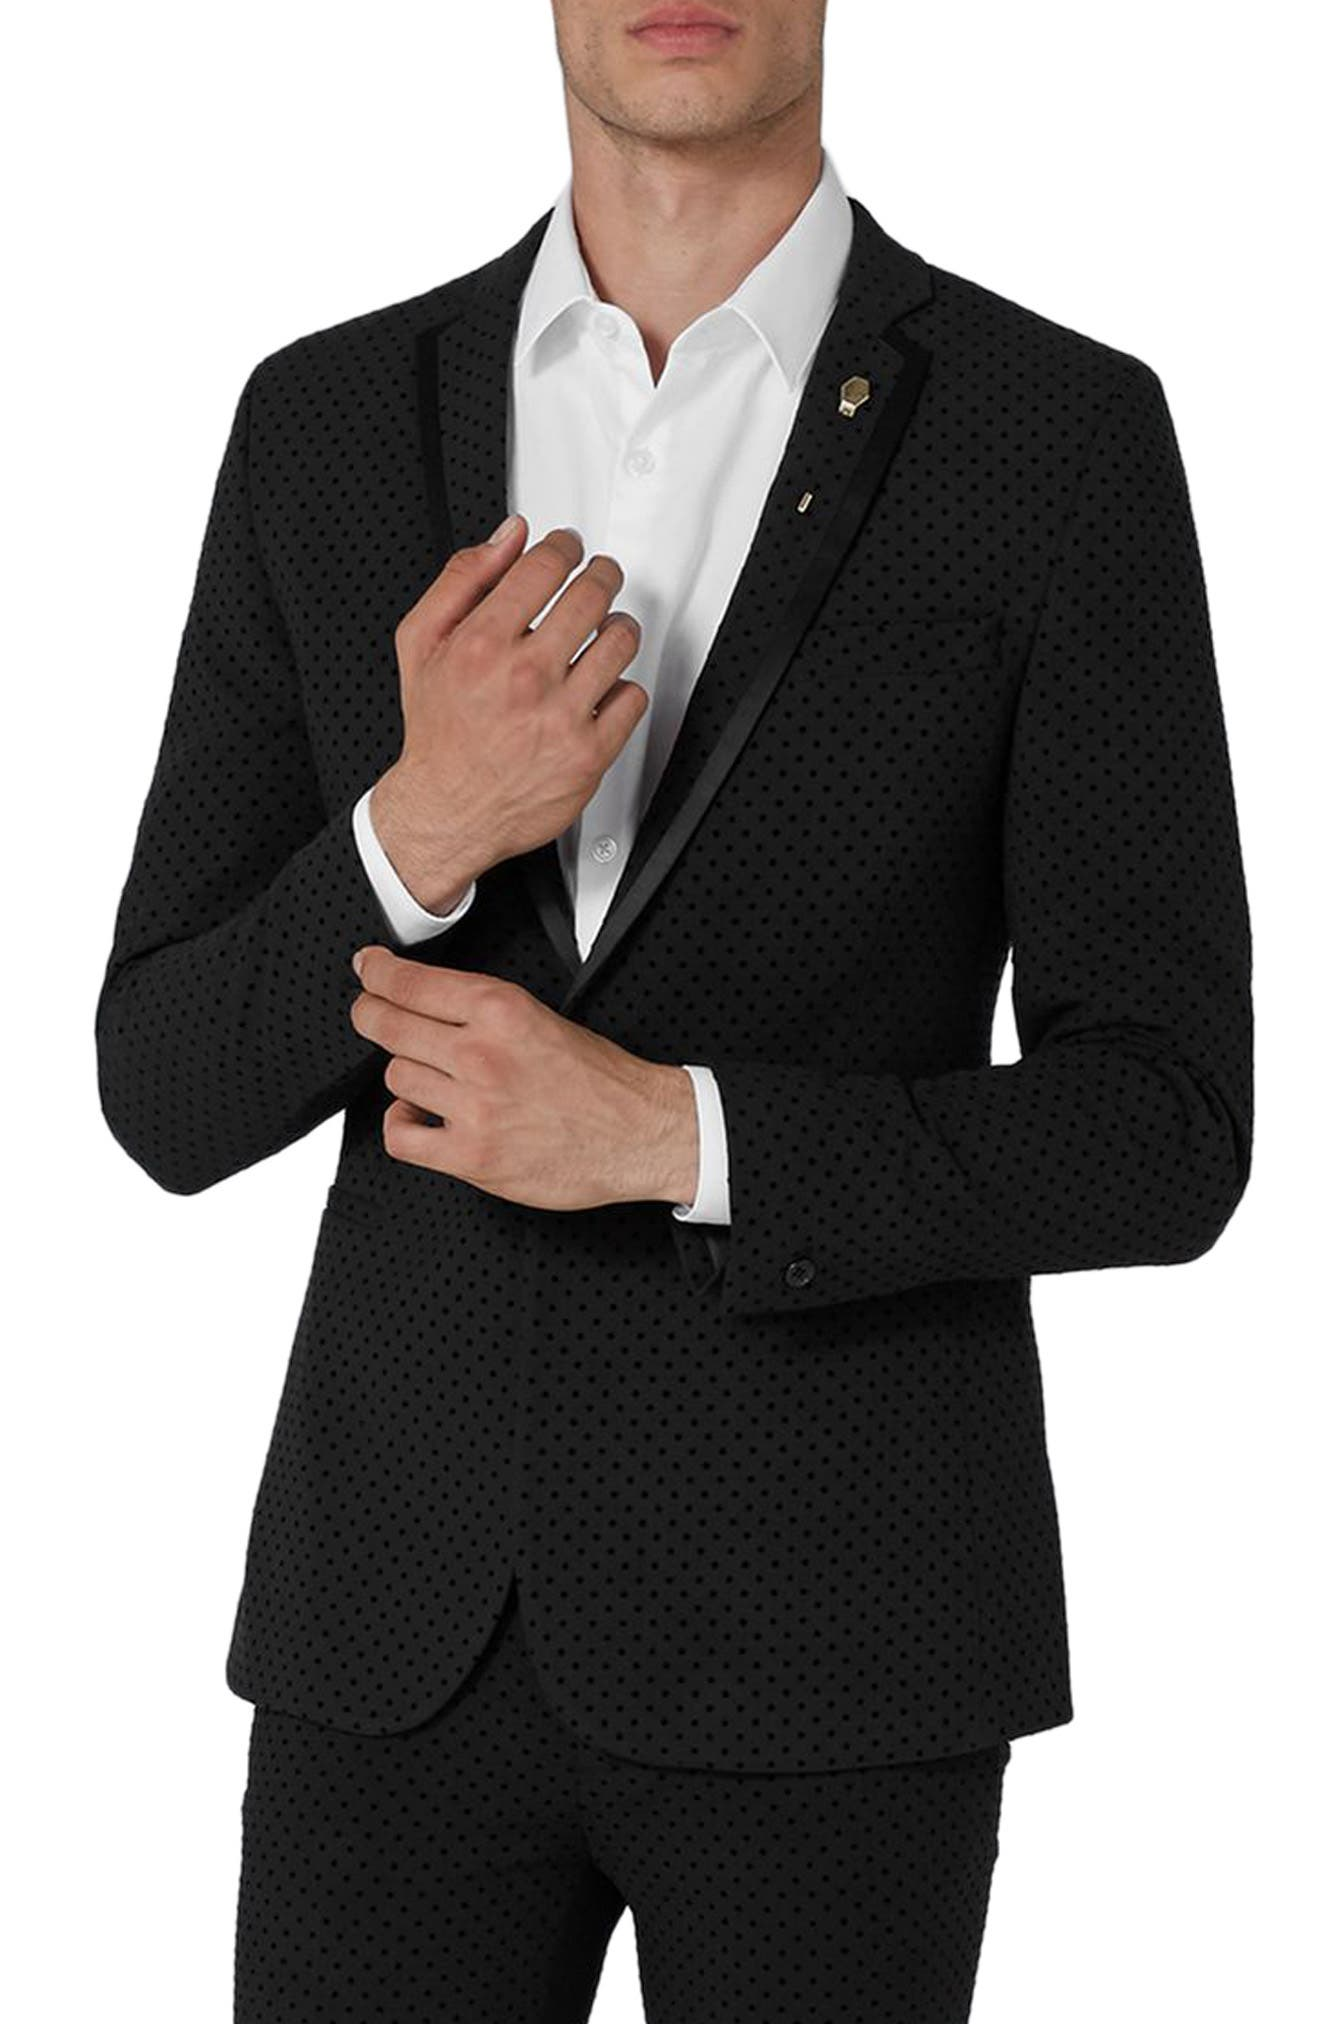 Dotted Ultra Skinny Fit Suit Jacket,                             Main thumbnail 1, color,                             001